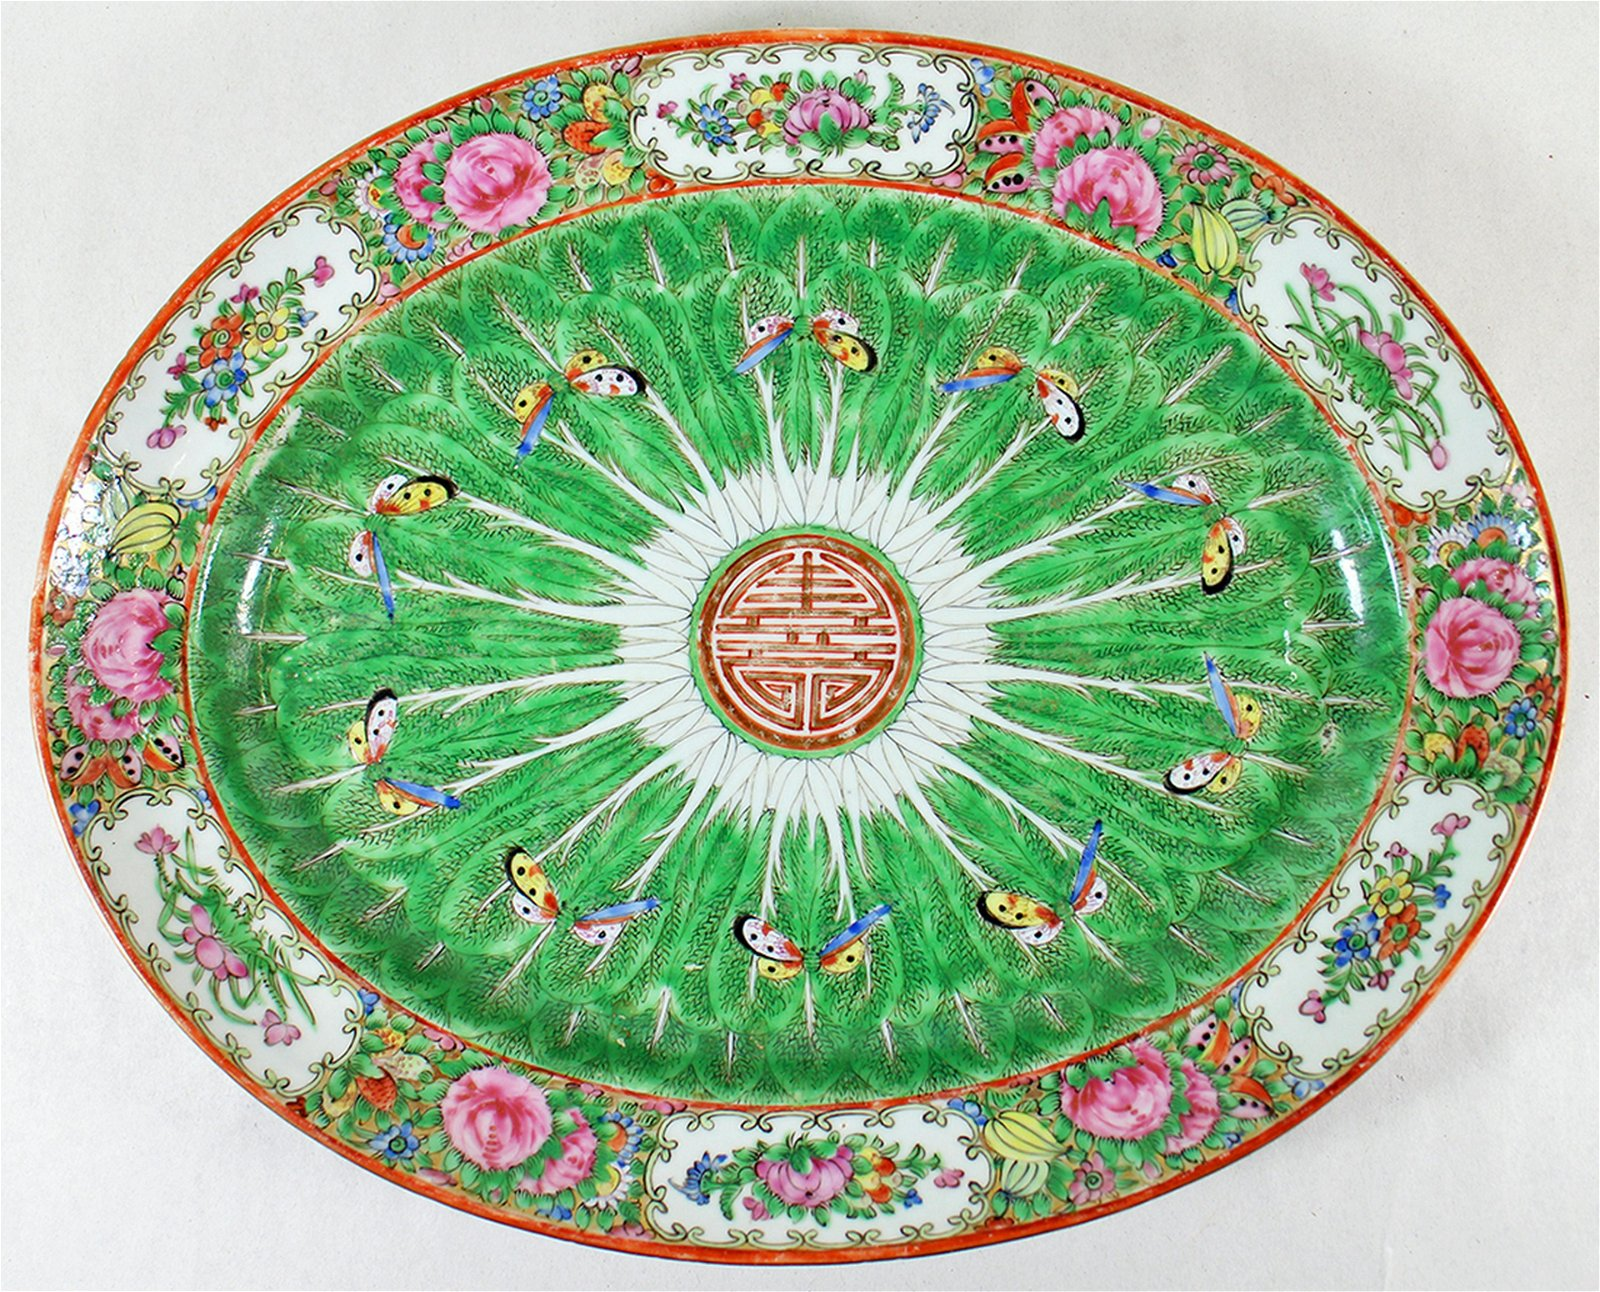 19th CENTURY CHINESE EXPORT ROSE CANTON PLATTER